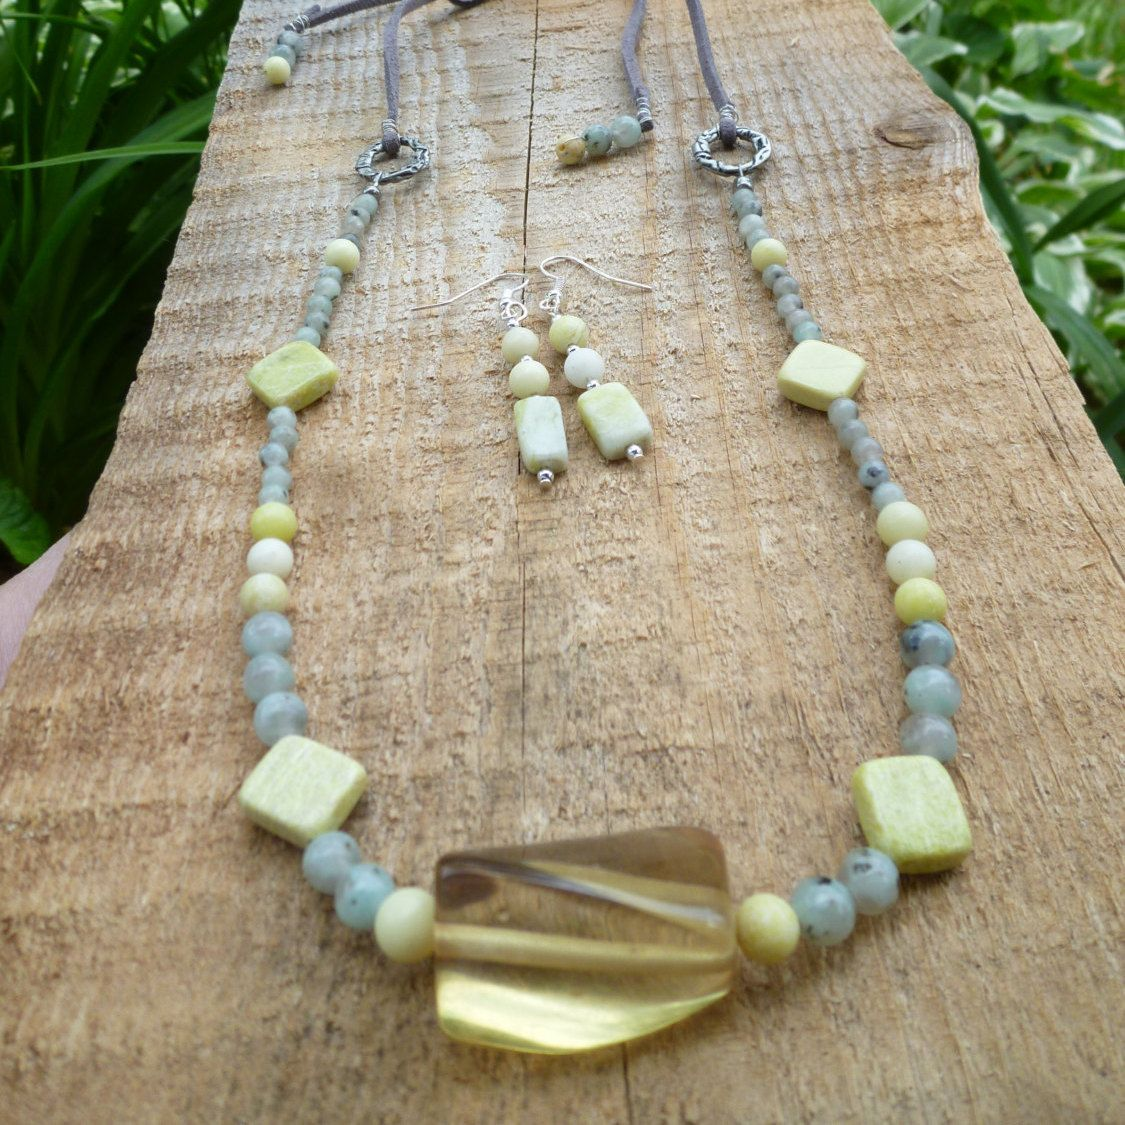 sesame jasper with olive jade necklace and earrings by DesisdesignsShop on Etsy